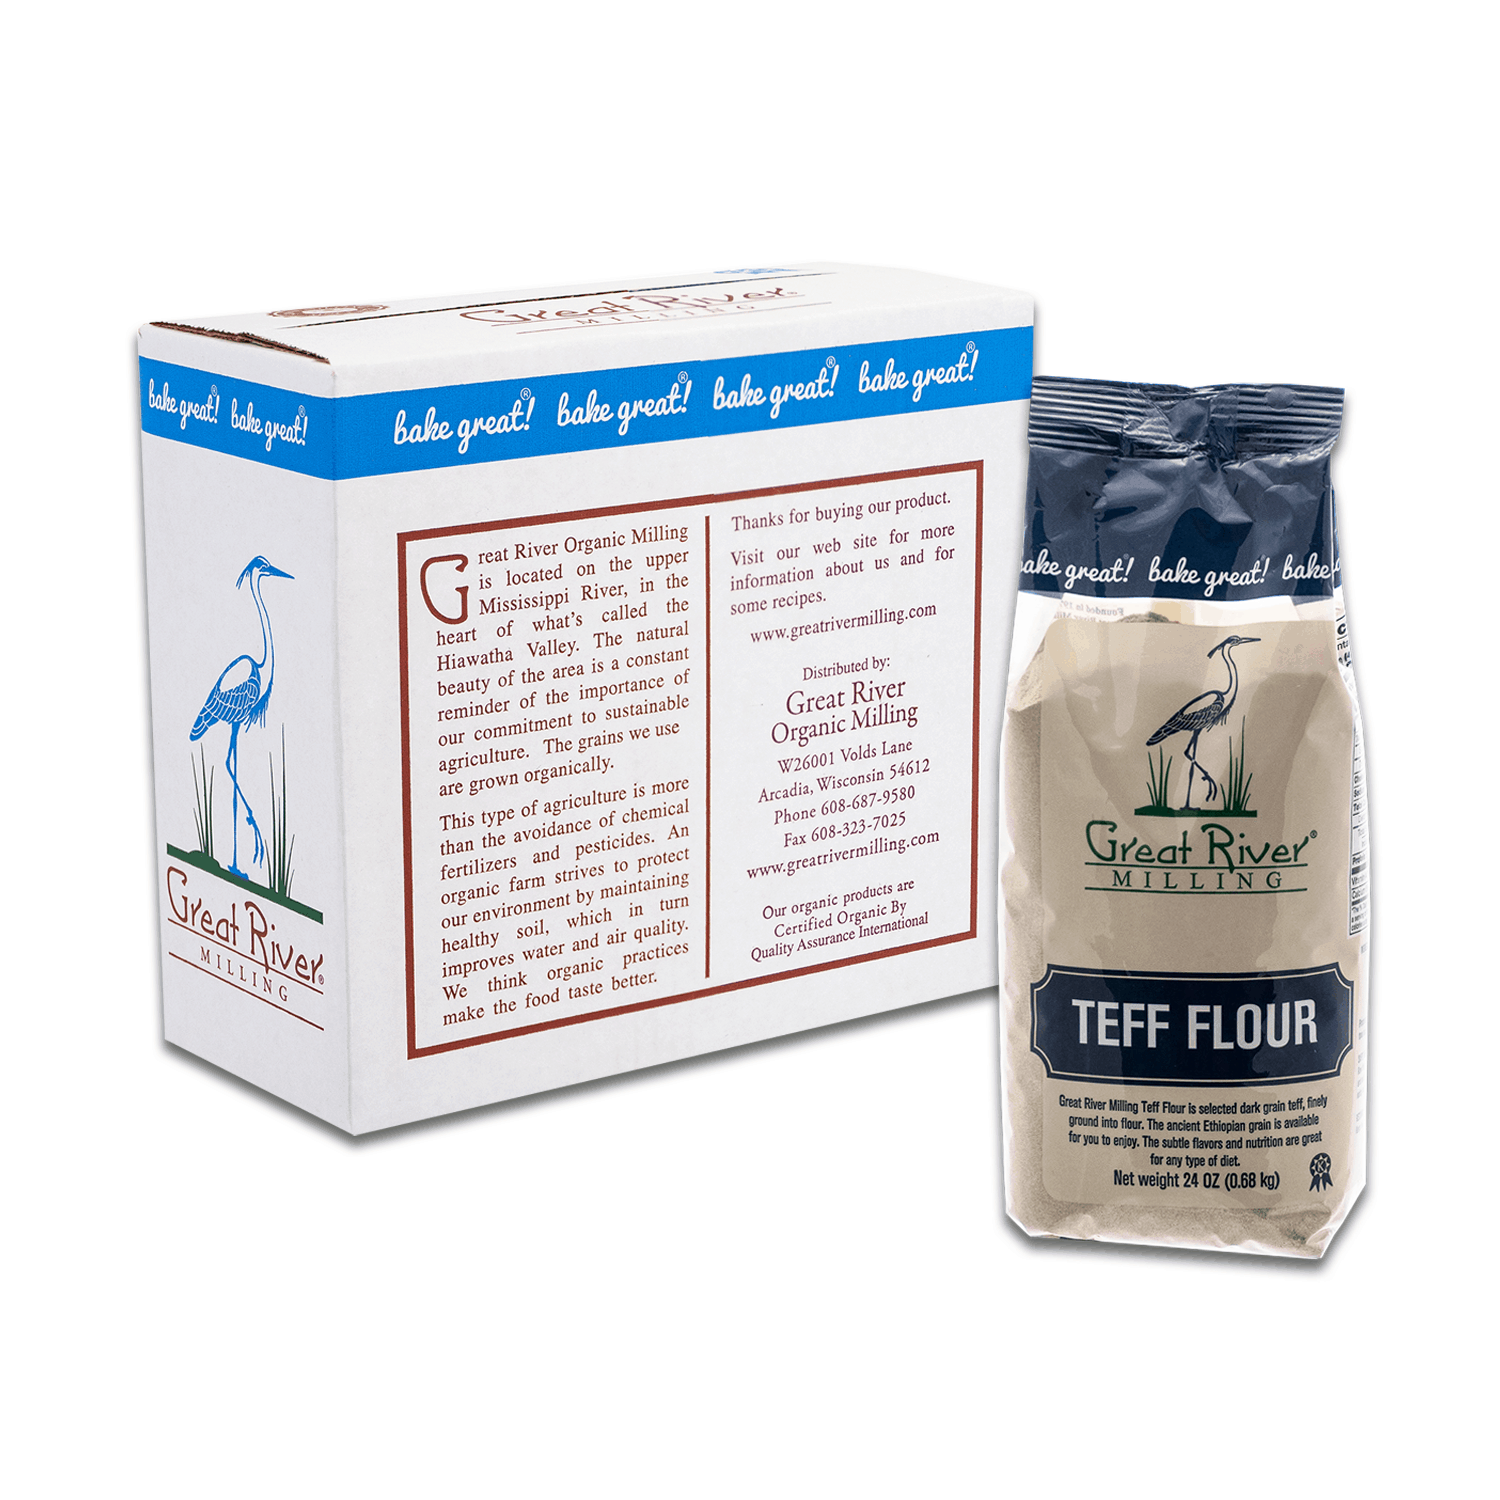 Great River Milling Teff Flour Case Closed